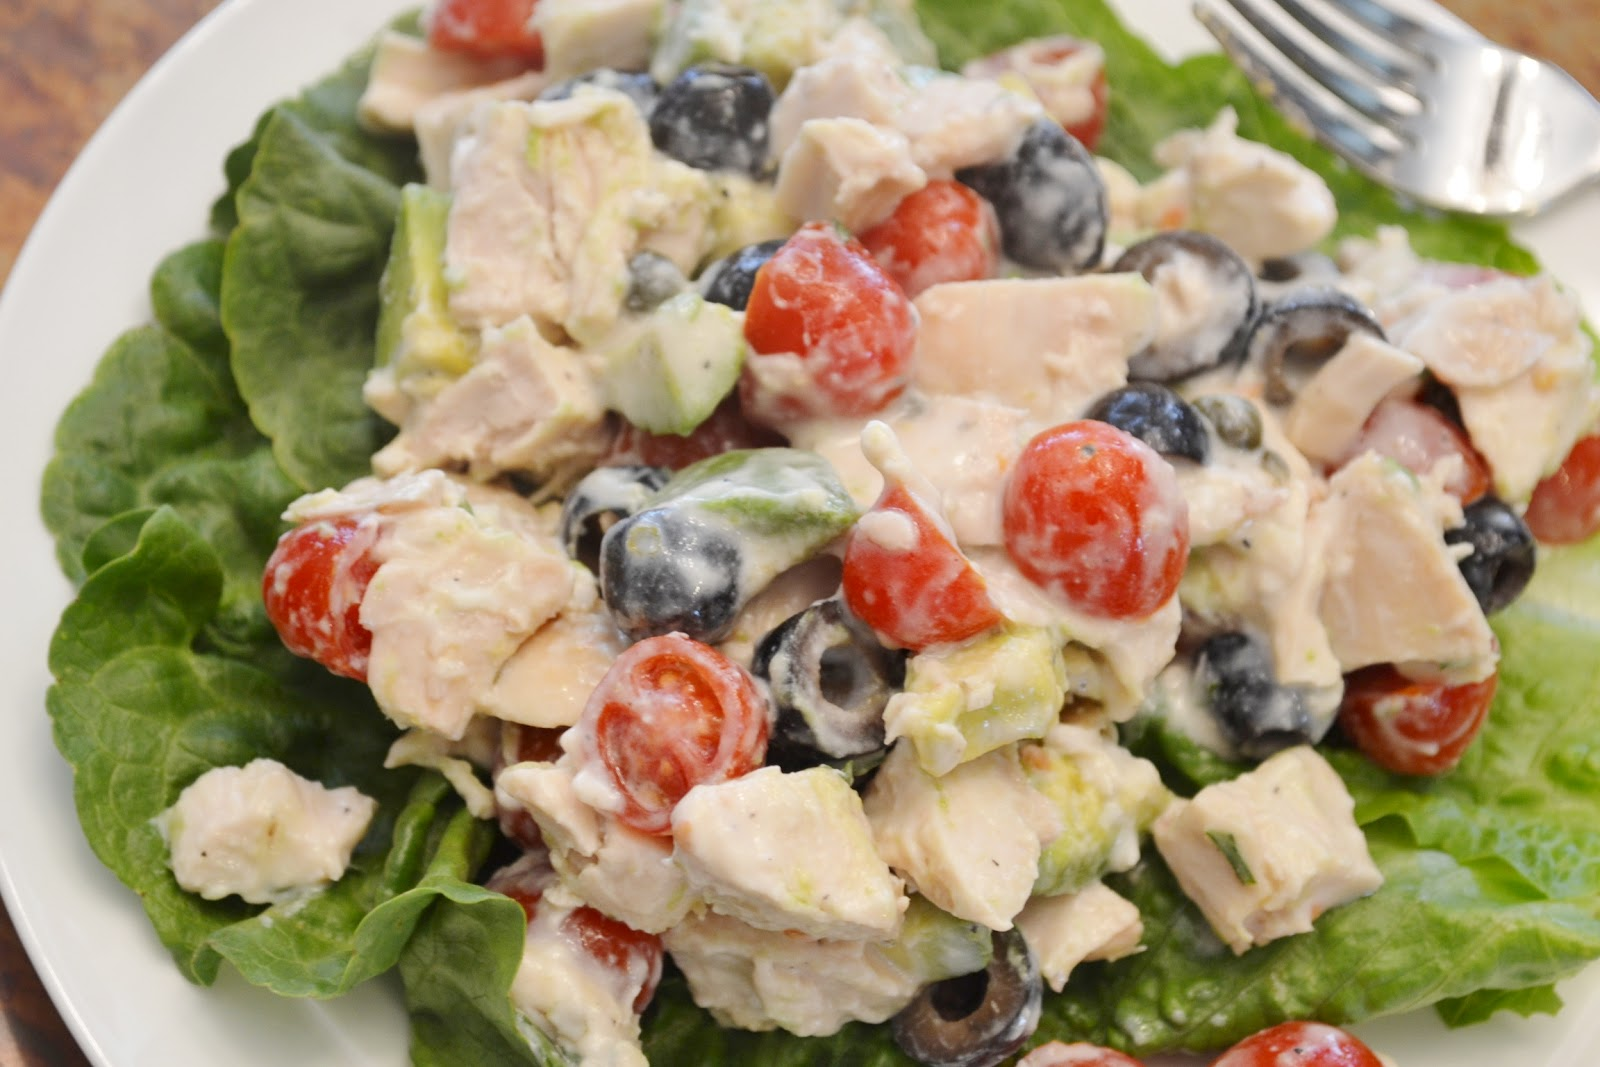 ... : Chicken and Avocado Lettuce Boats with Buttermilk Dijon Dressing